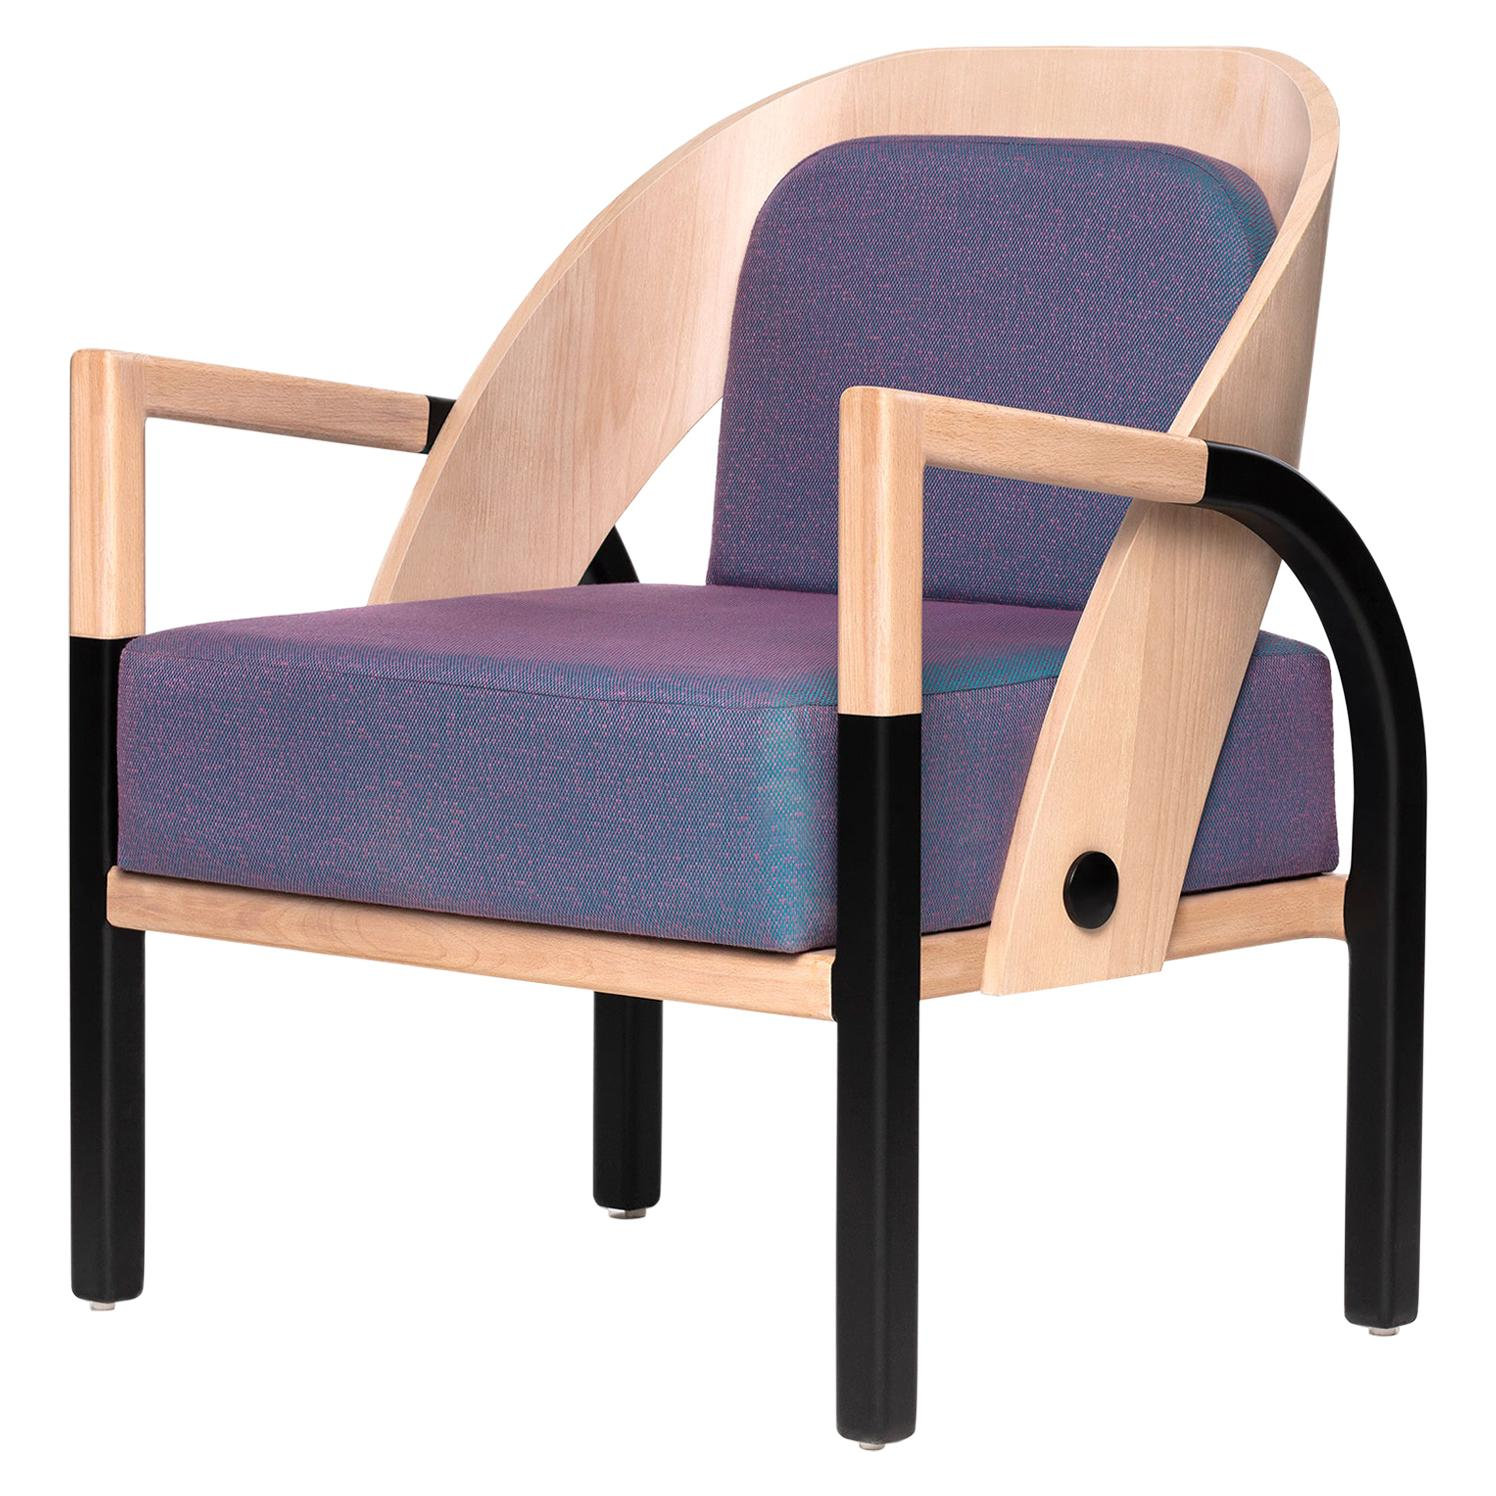 Mid-Century Modern Style Solid Wood Armchair Upholstered in Cerulean Textile